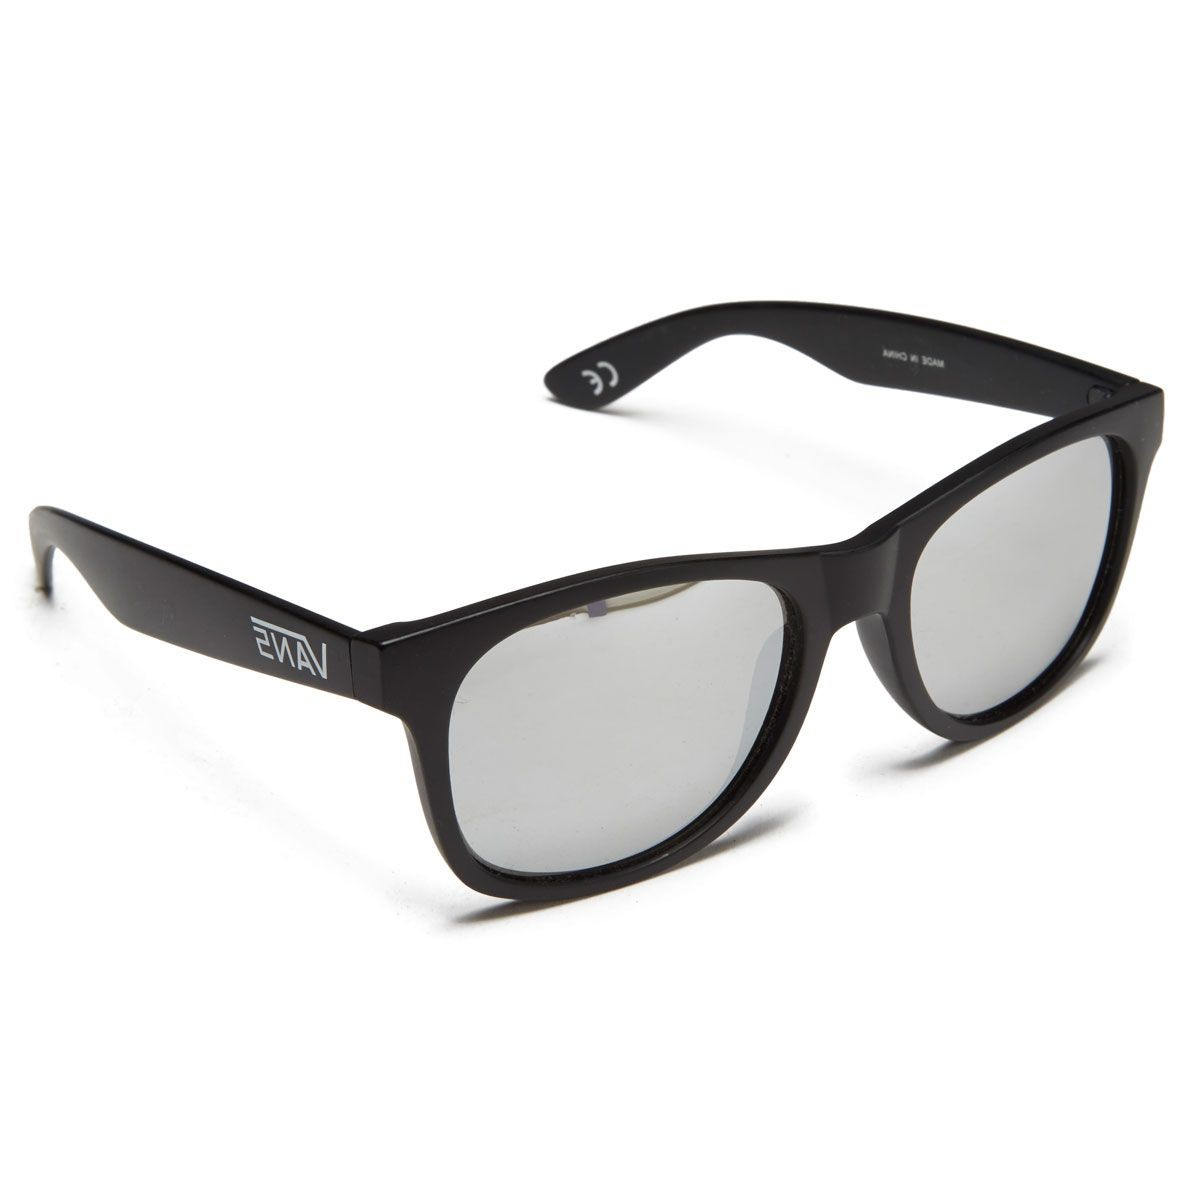 d2cd0eb2bc Vans Spicoli 4 Shades Sunglasses - Matte Black Silver Mirror